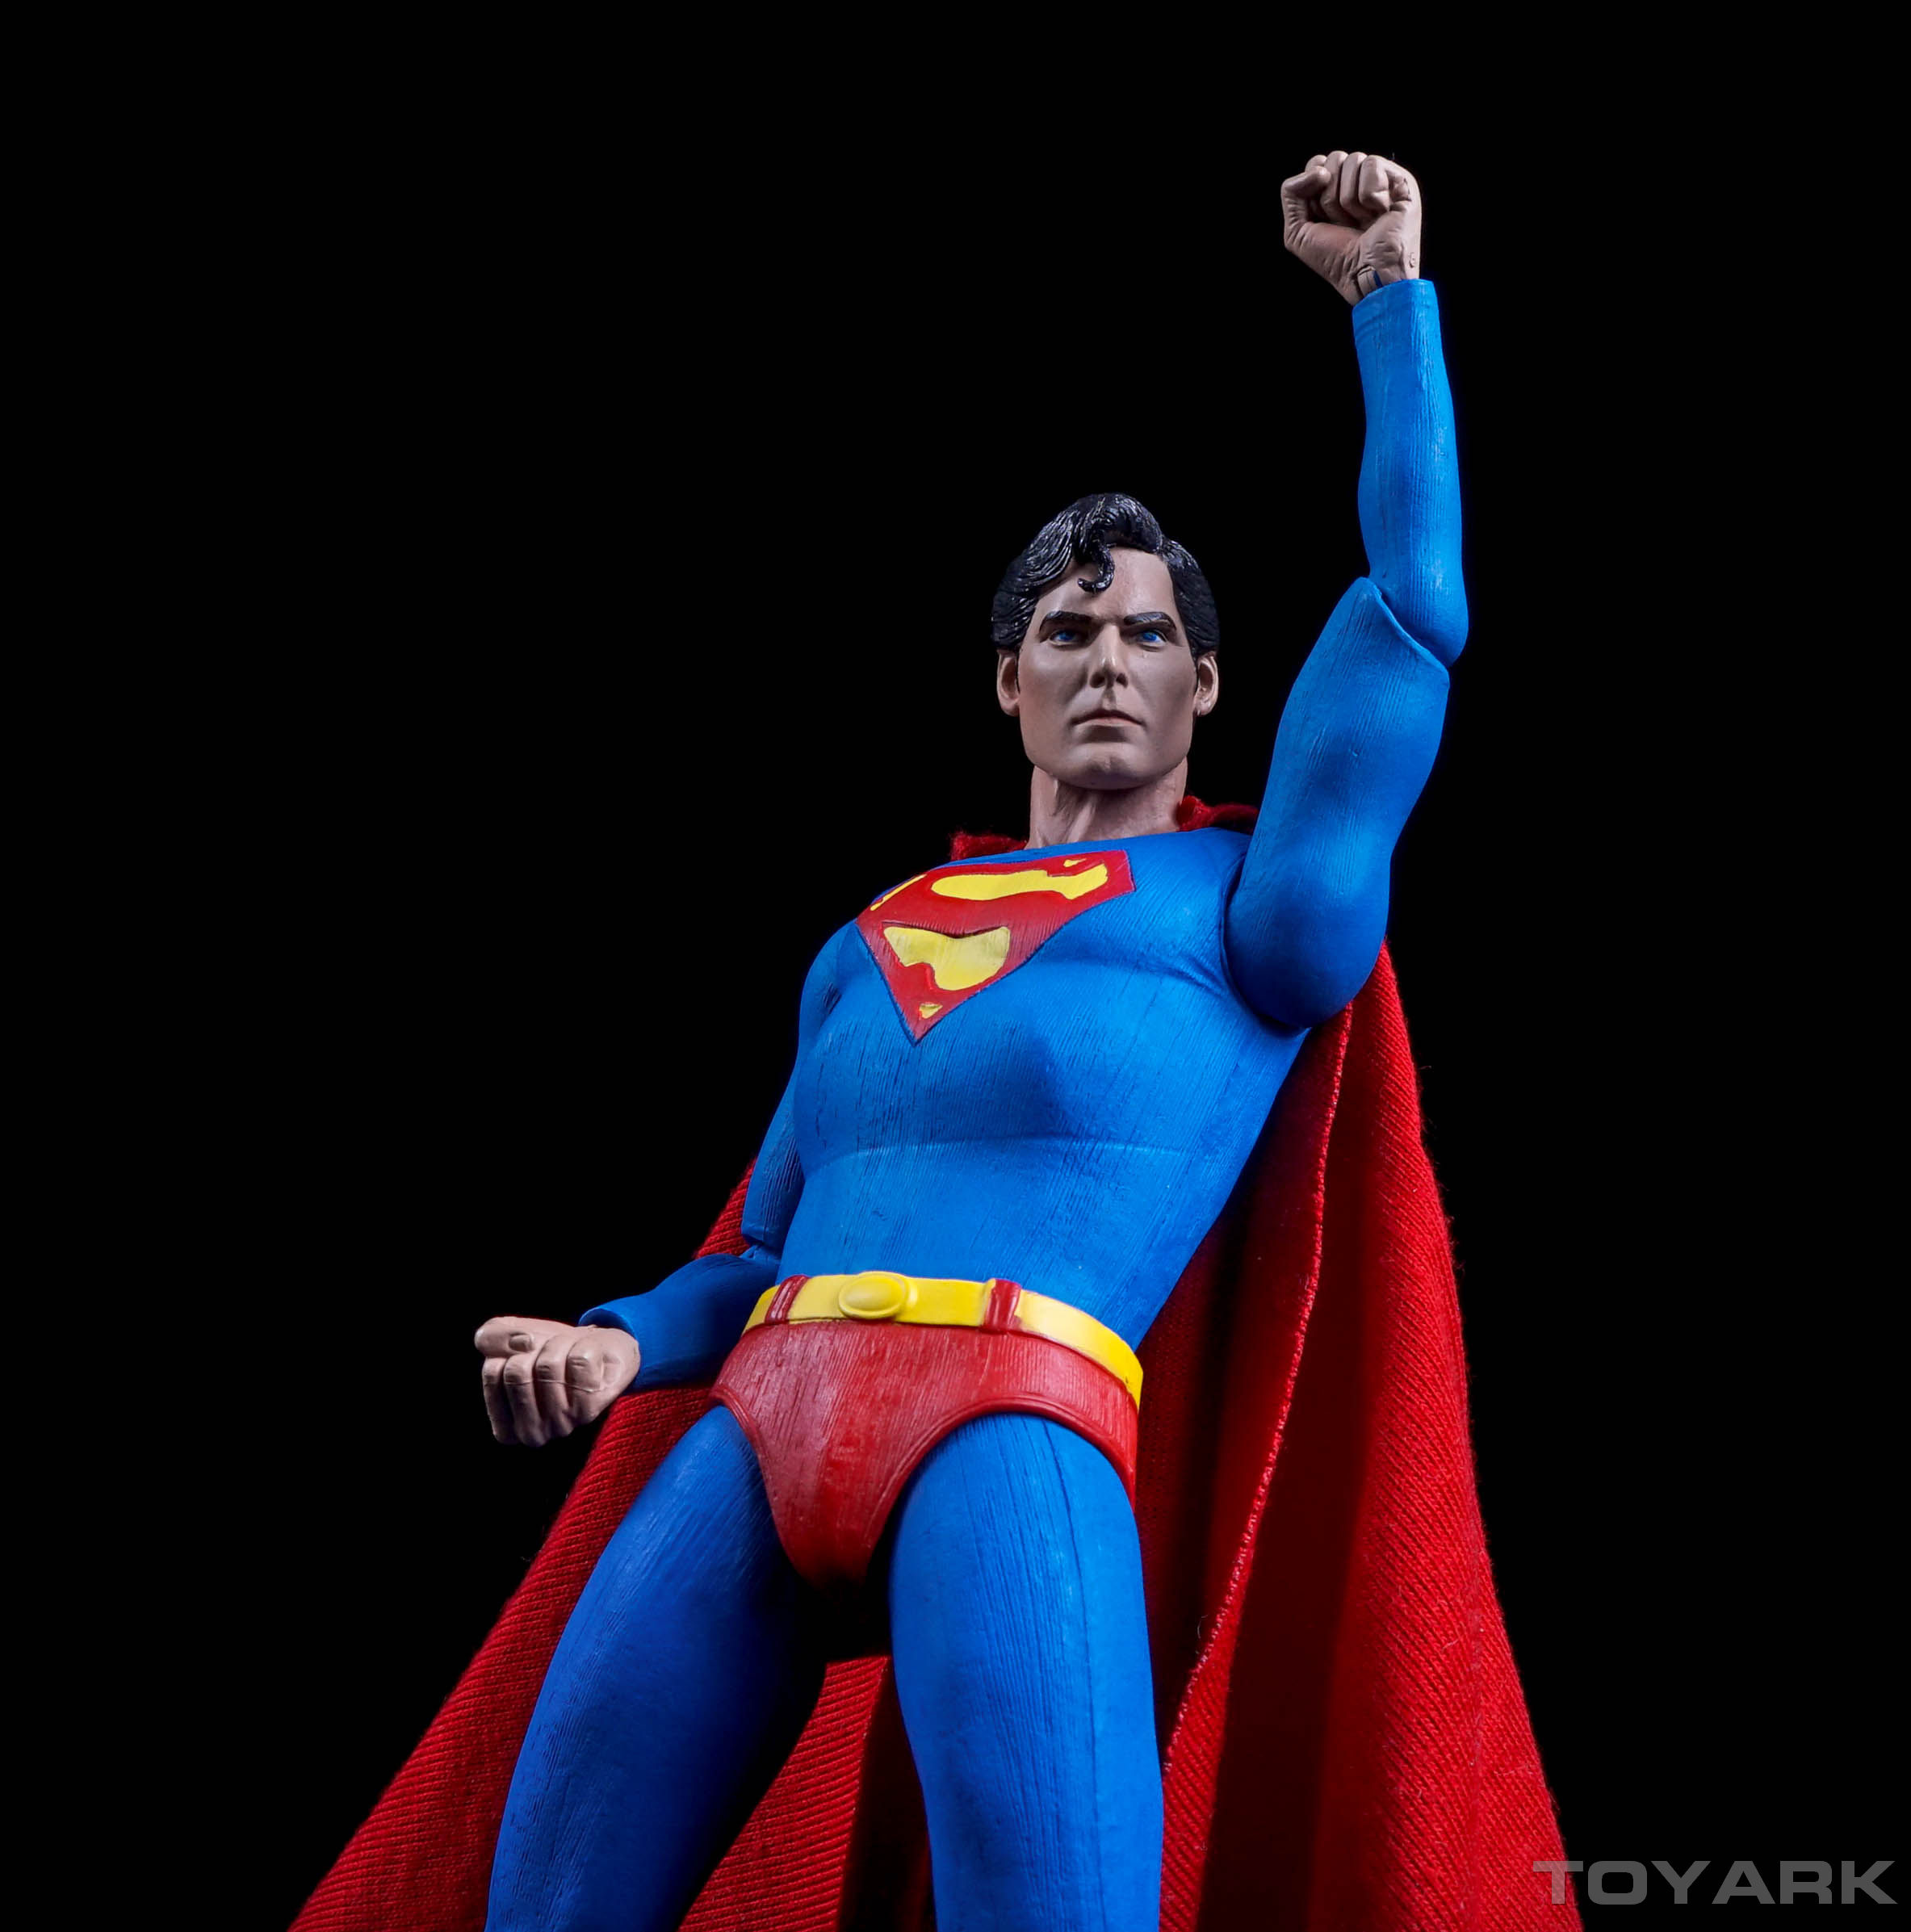 http://news.toyark.com/wp-content/uploads/sites/4/2015/11/NECA-7-Inch-Superman-042.jpg